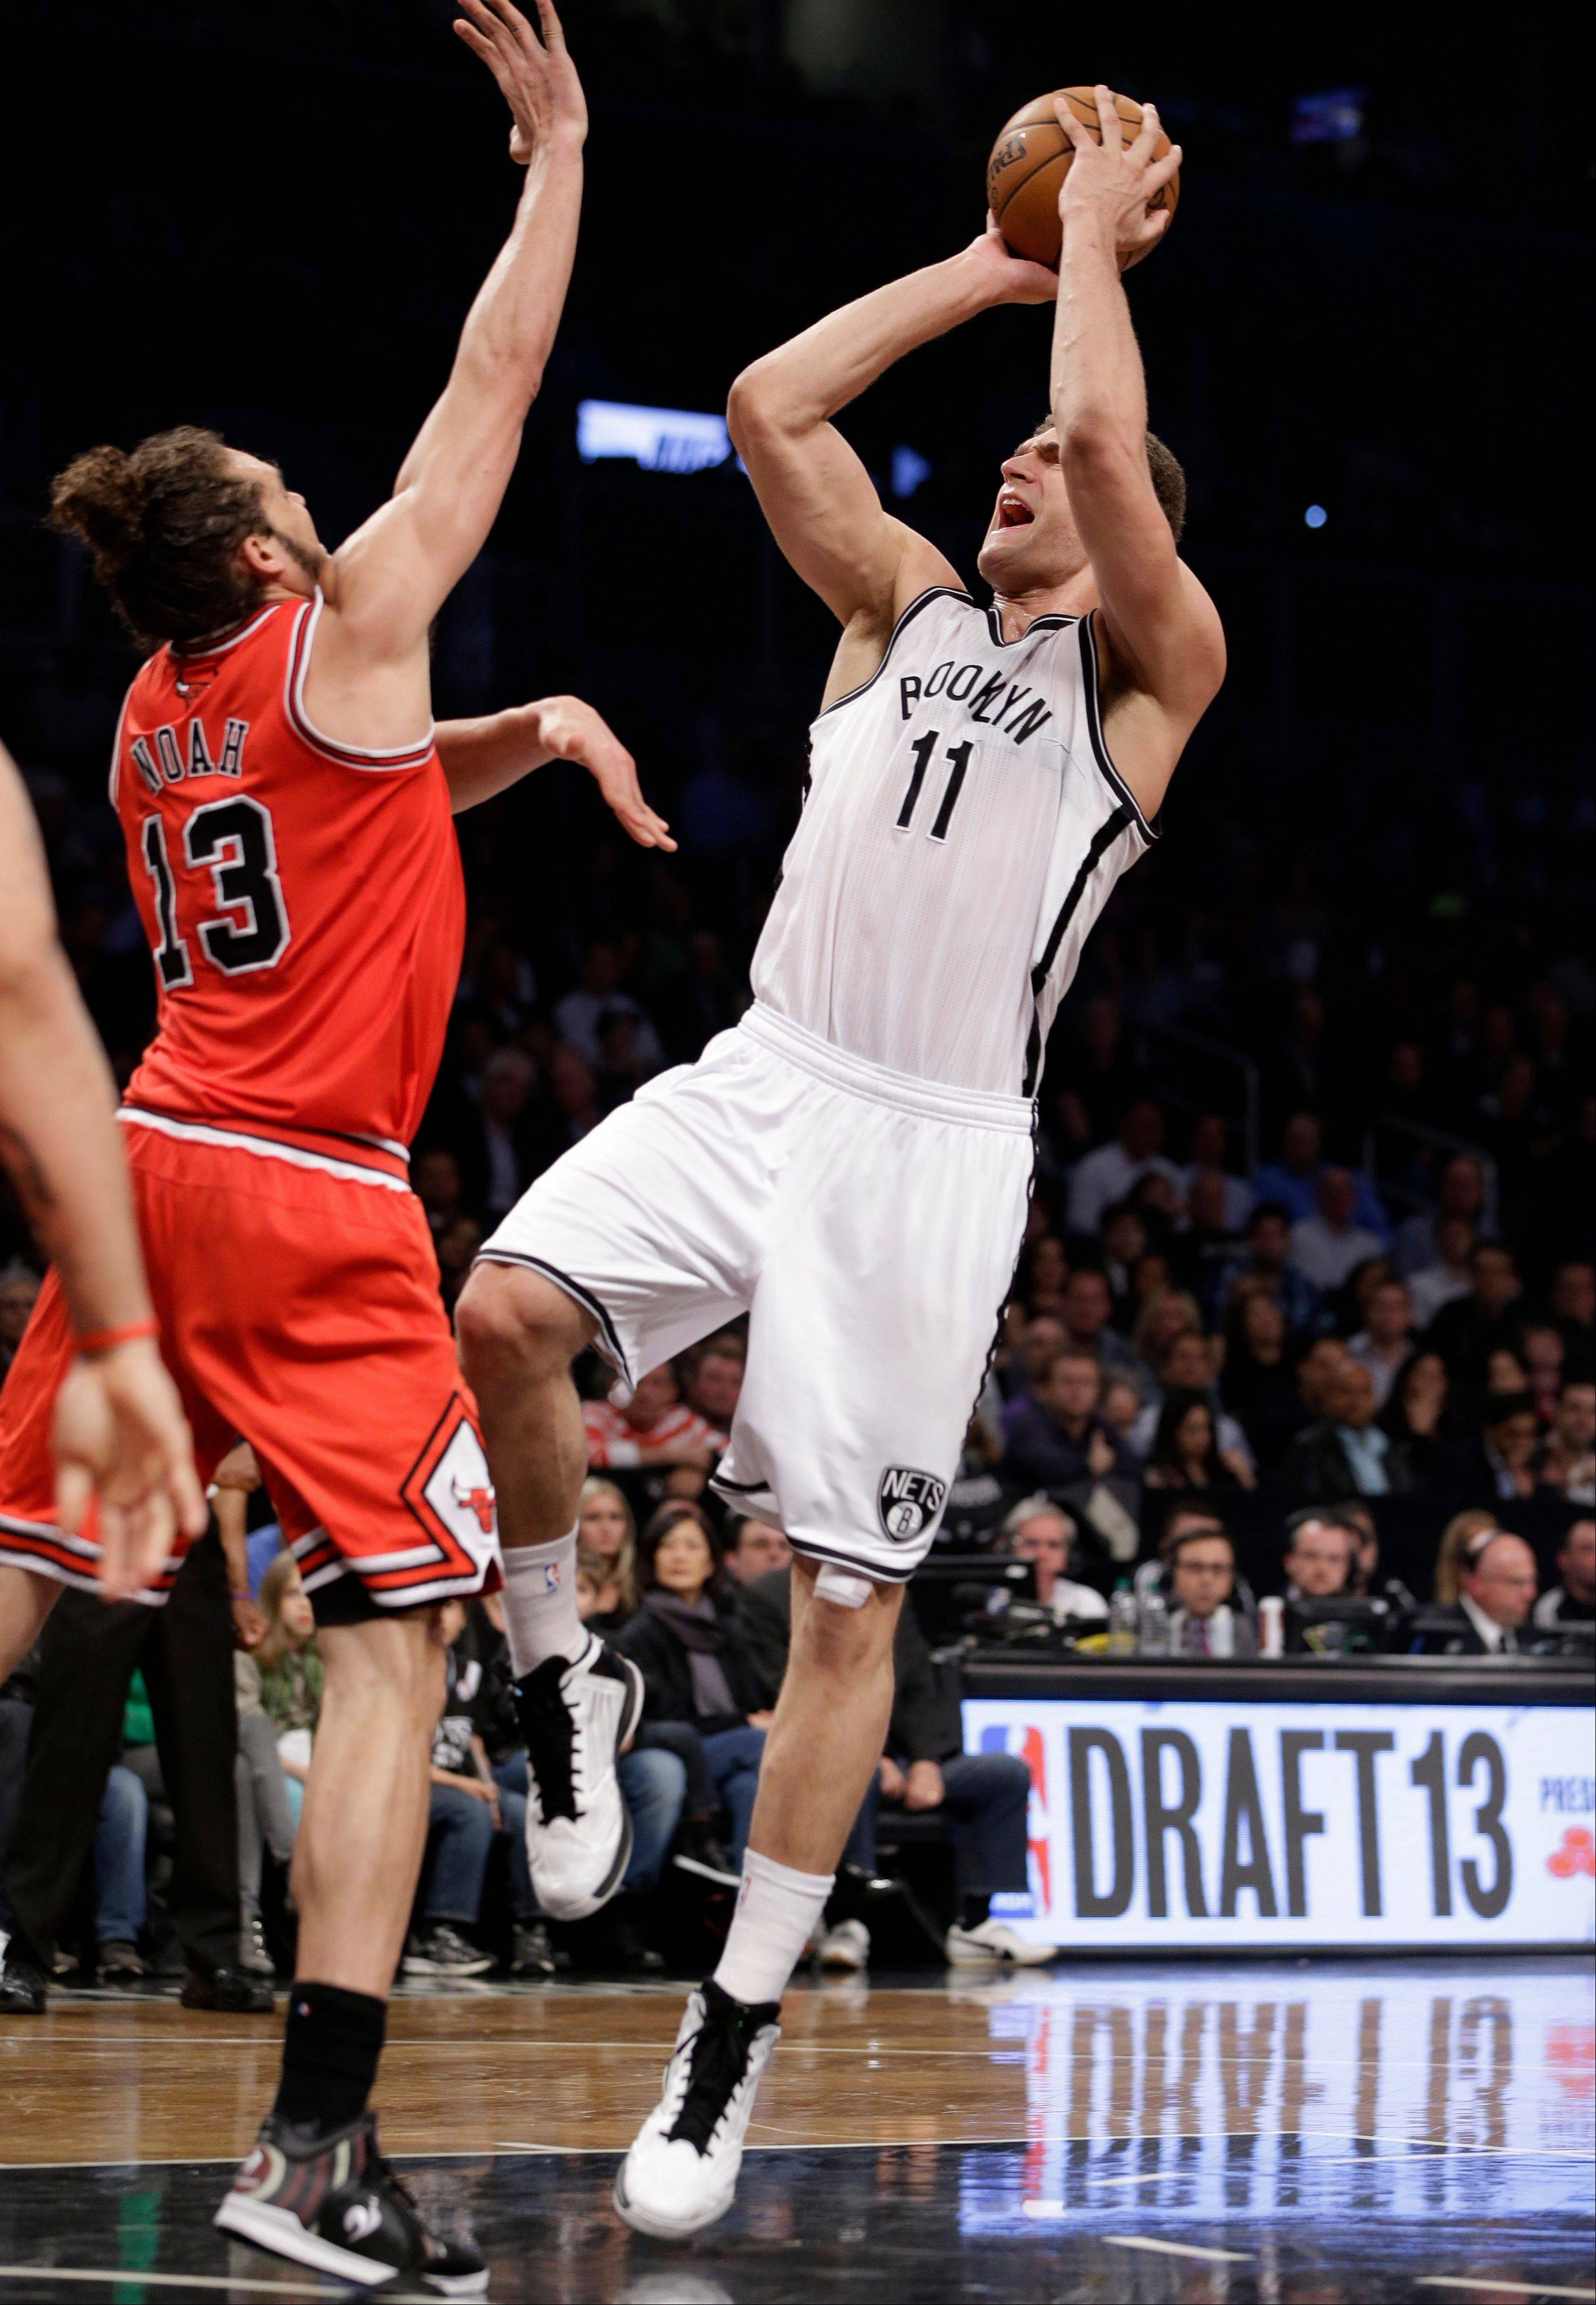 Brooklyn Nets center Brook Lopez shoots over Bulls center Joakim Noah during Game 5 on Monday night.